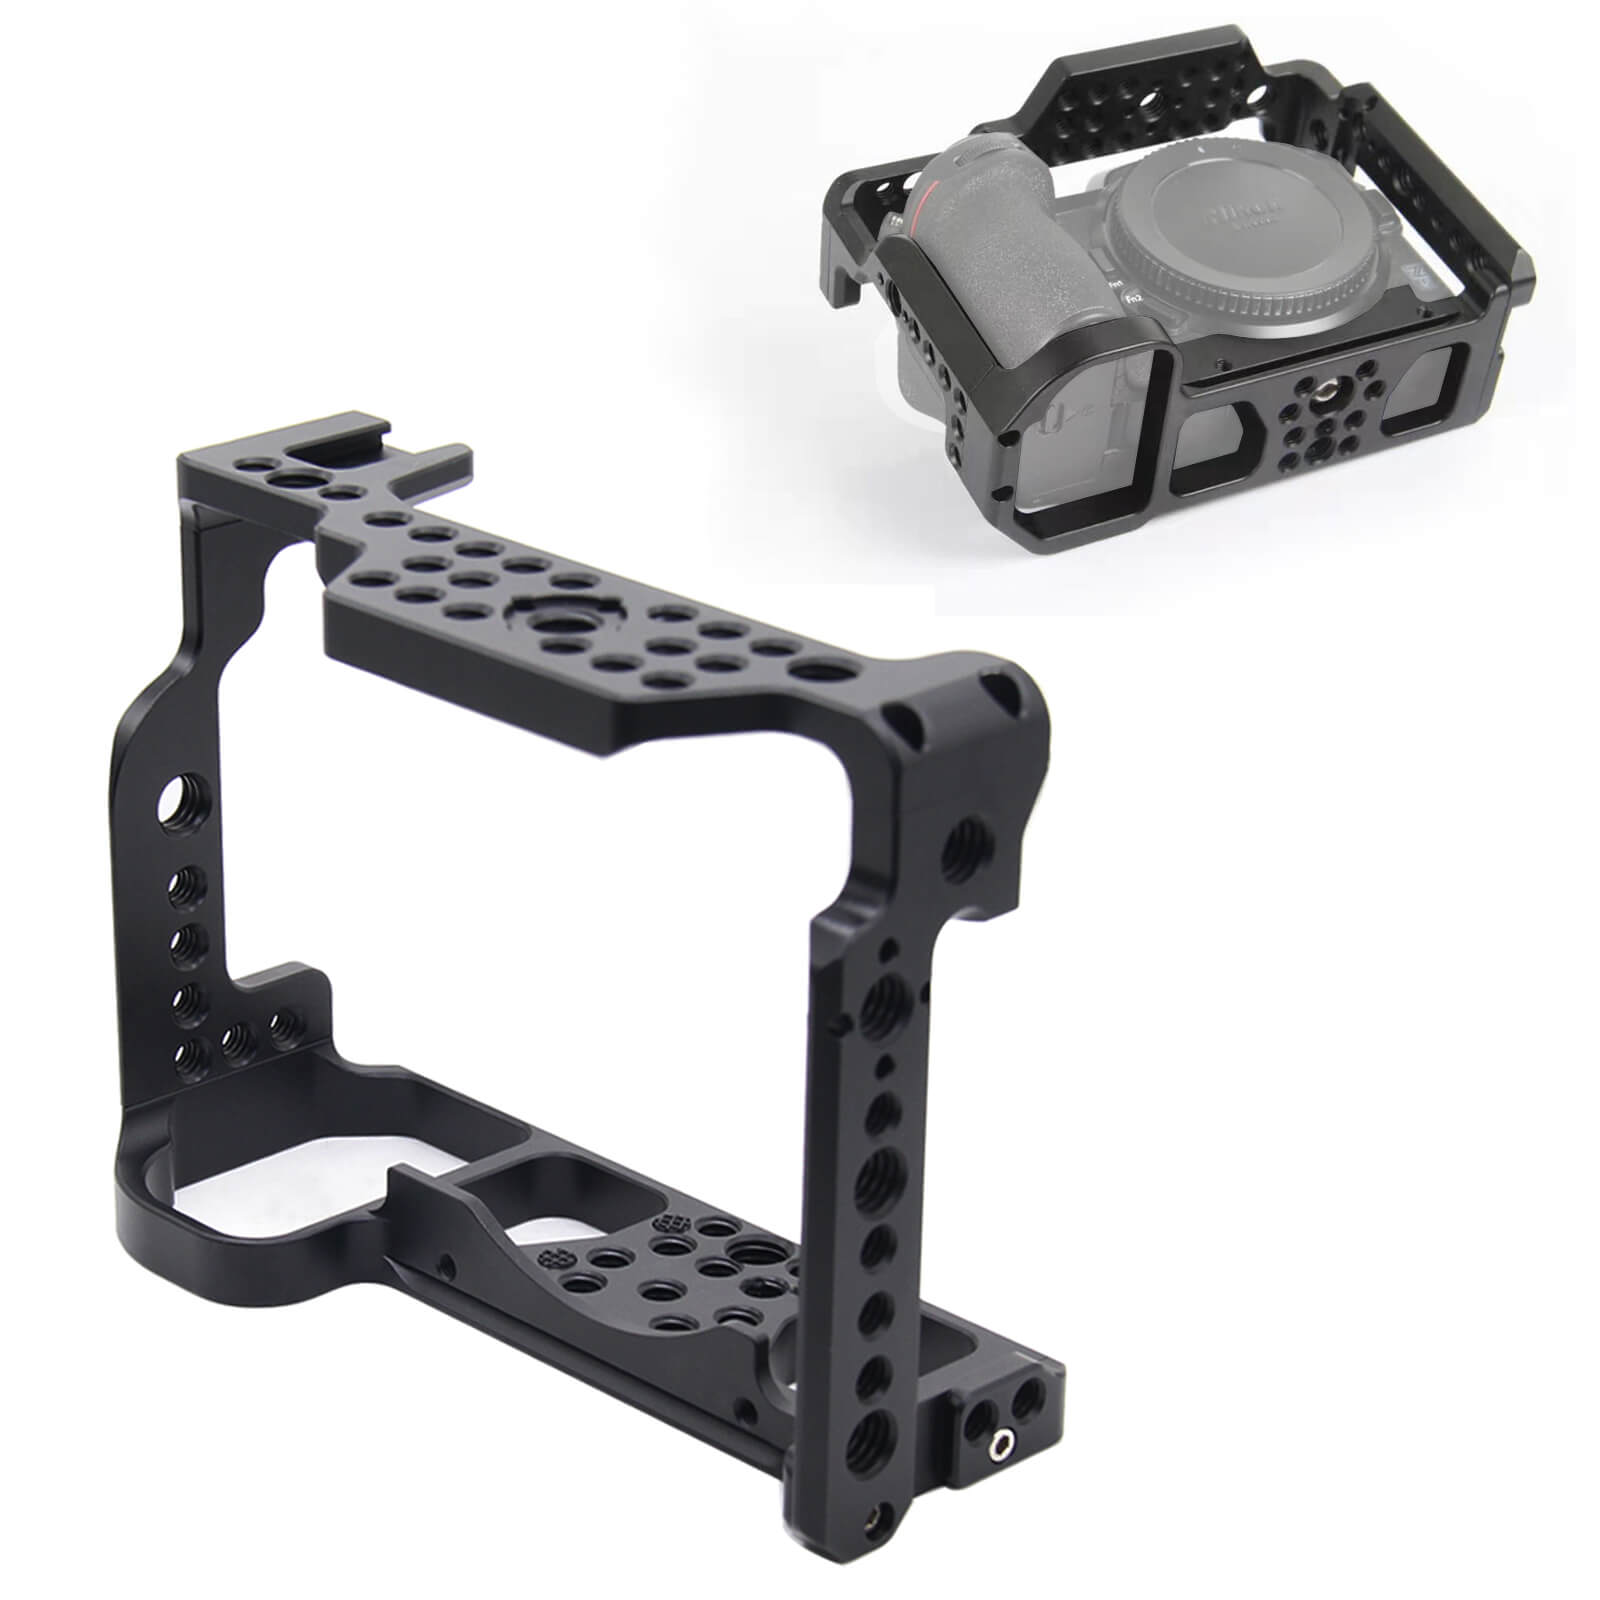 iShoot Aviation Aluminum Video Photography Camera Cage with Quick Release Plate for Nikon Z6 Z7 FX-Format Mirrorless Camera image